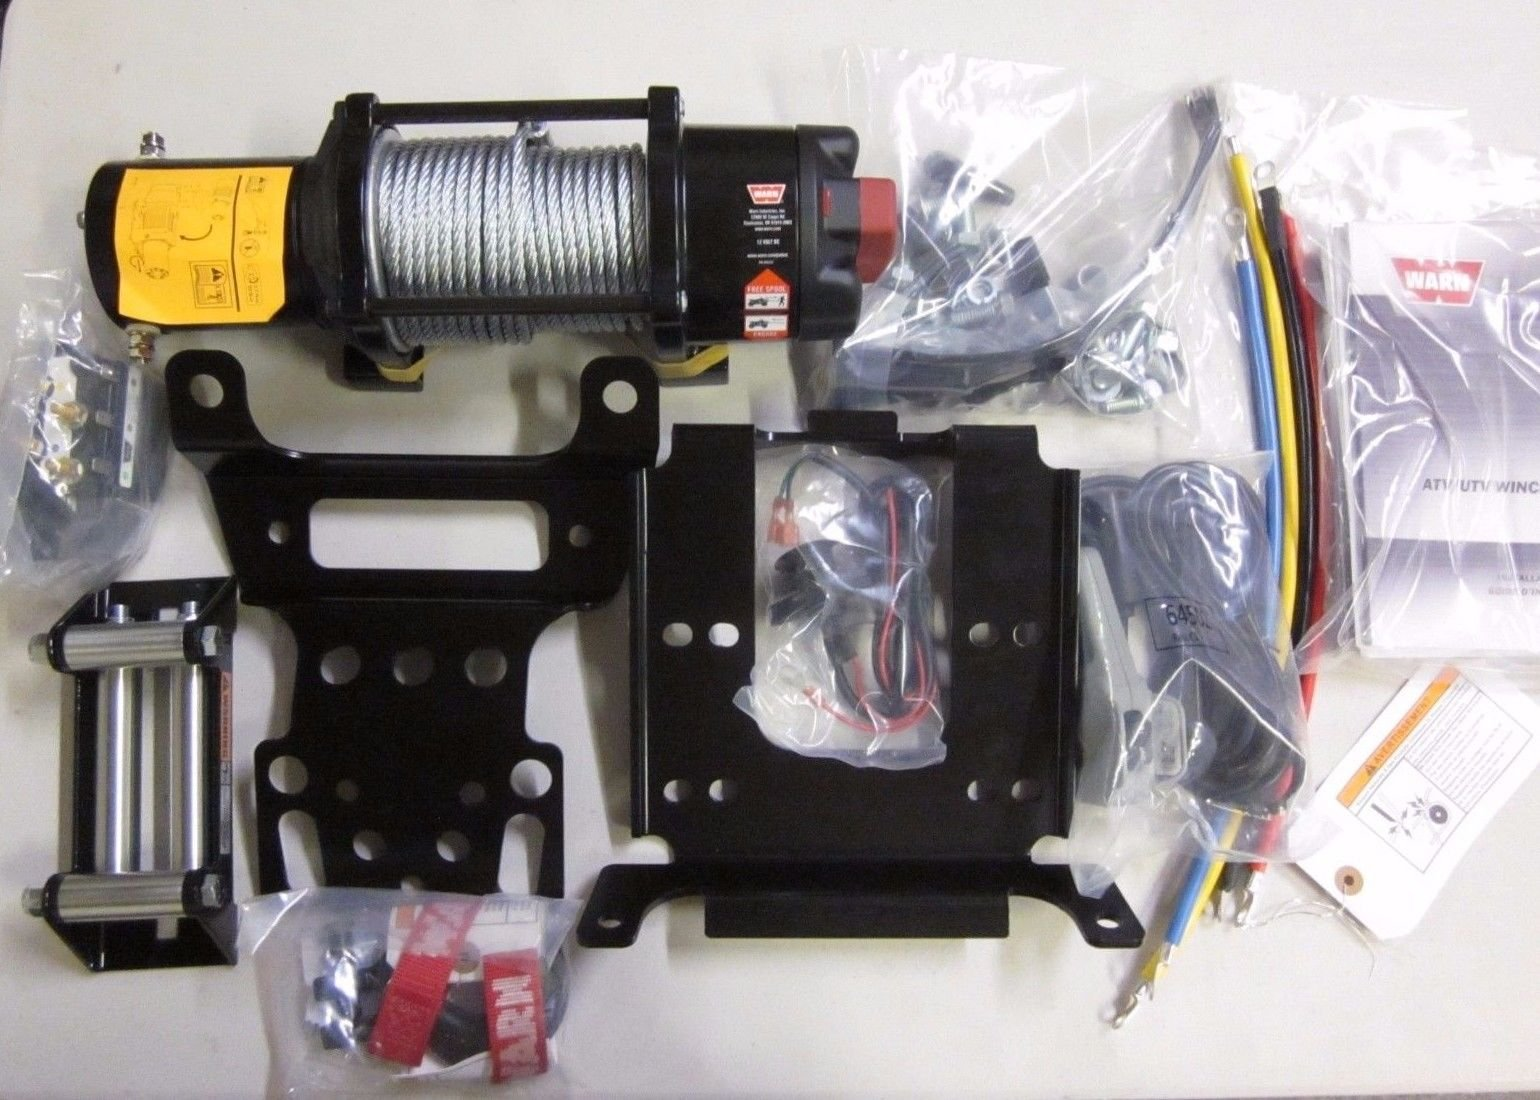 Polaris 2014-16 Ranger 570 900 1000 Crew Warn ProVantage 4500 Winch kit 2880097 by Quad Logic